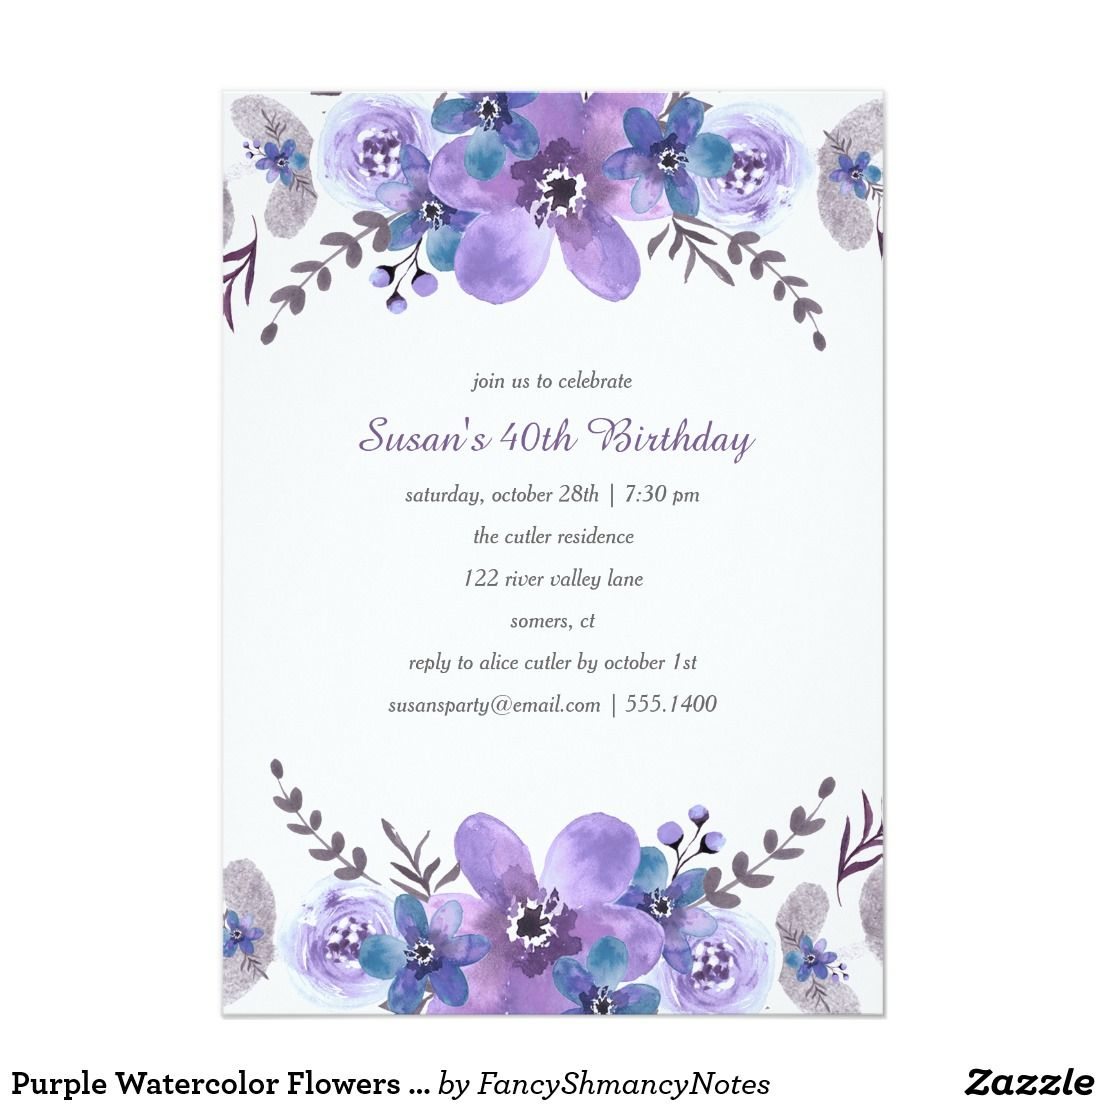 Purple watercolor flowers birthday invitation wedding purple watercolor flowers birthday invitation beautiful purple flowers with a hint of blue and silver make this invitation so pretty izmirmasajfo